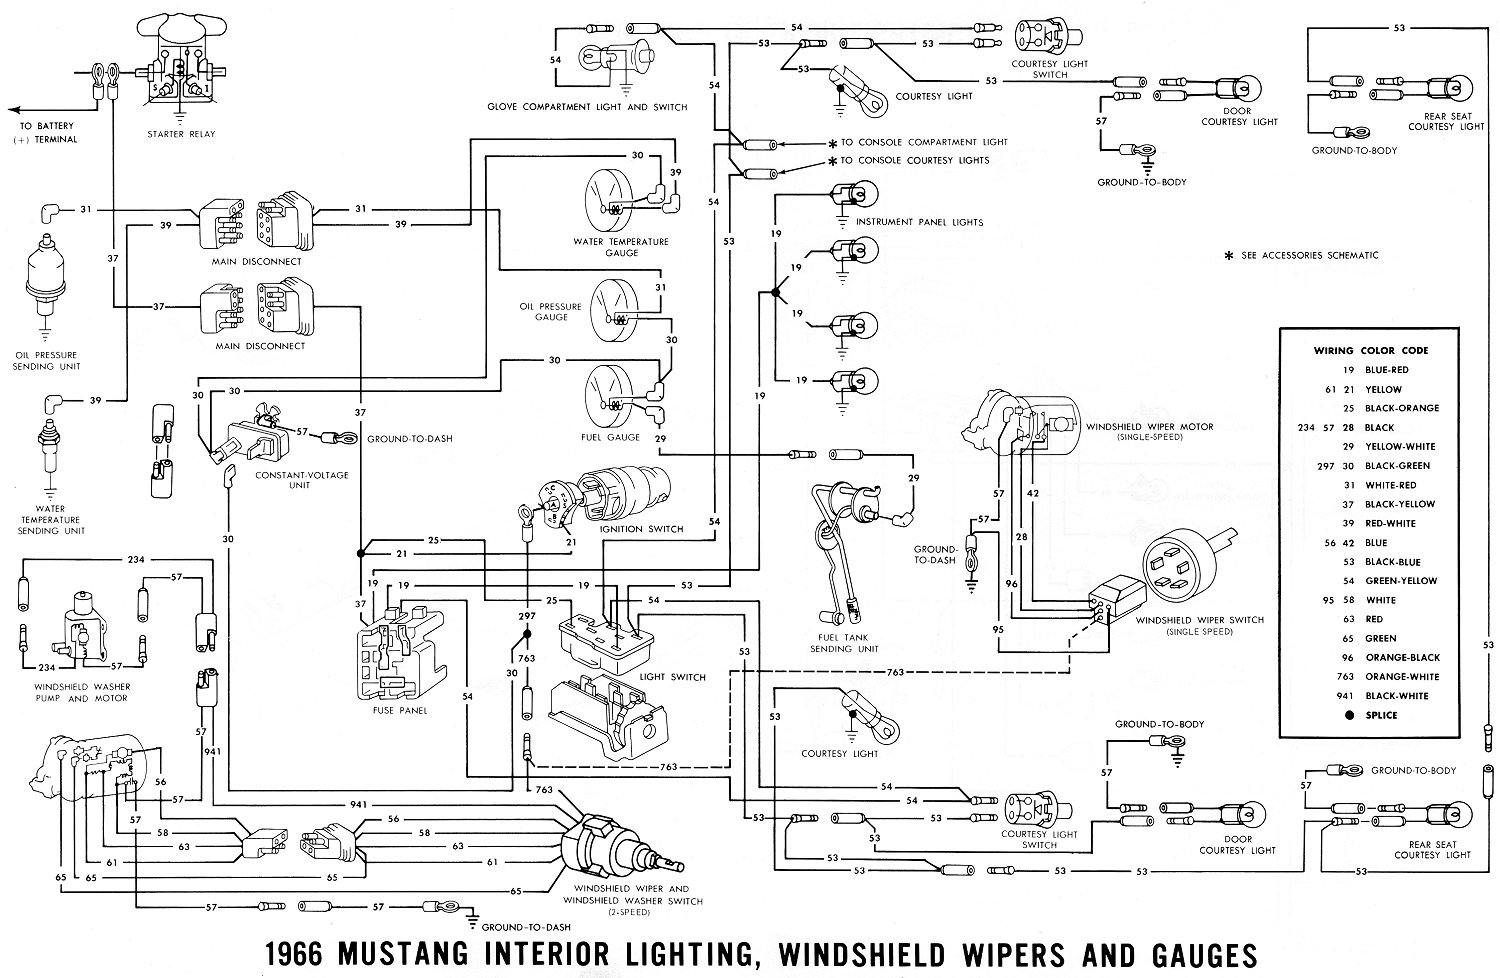 66 mustang wiring diagrams wiring diagram 1966 mustang wiring diagrams average joe restoration rh averagejoerestoration com 66 mustang dash wiring diagram 66 publicscrutiny Images